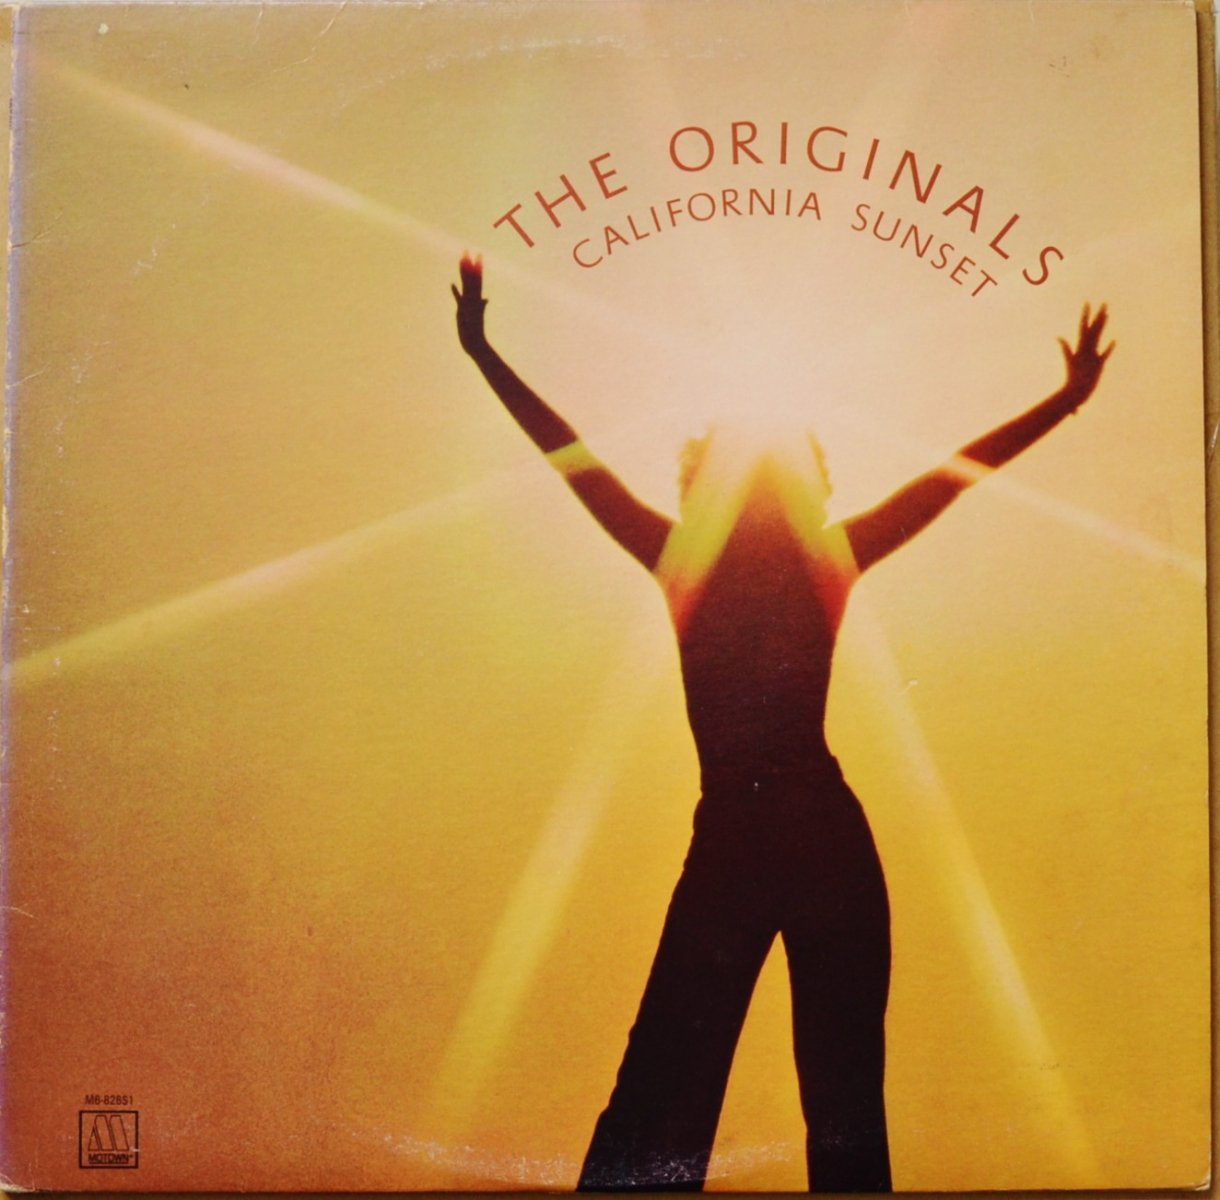 THE ORIGINALS ‎/ CALIFORNIA SUNSET (LP)